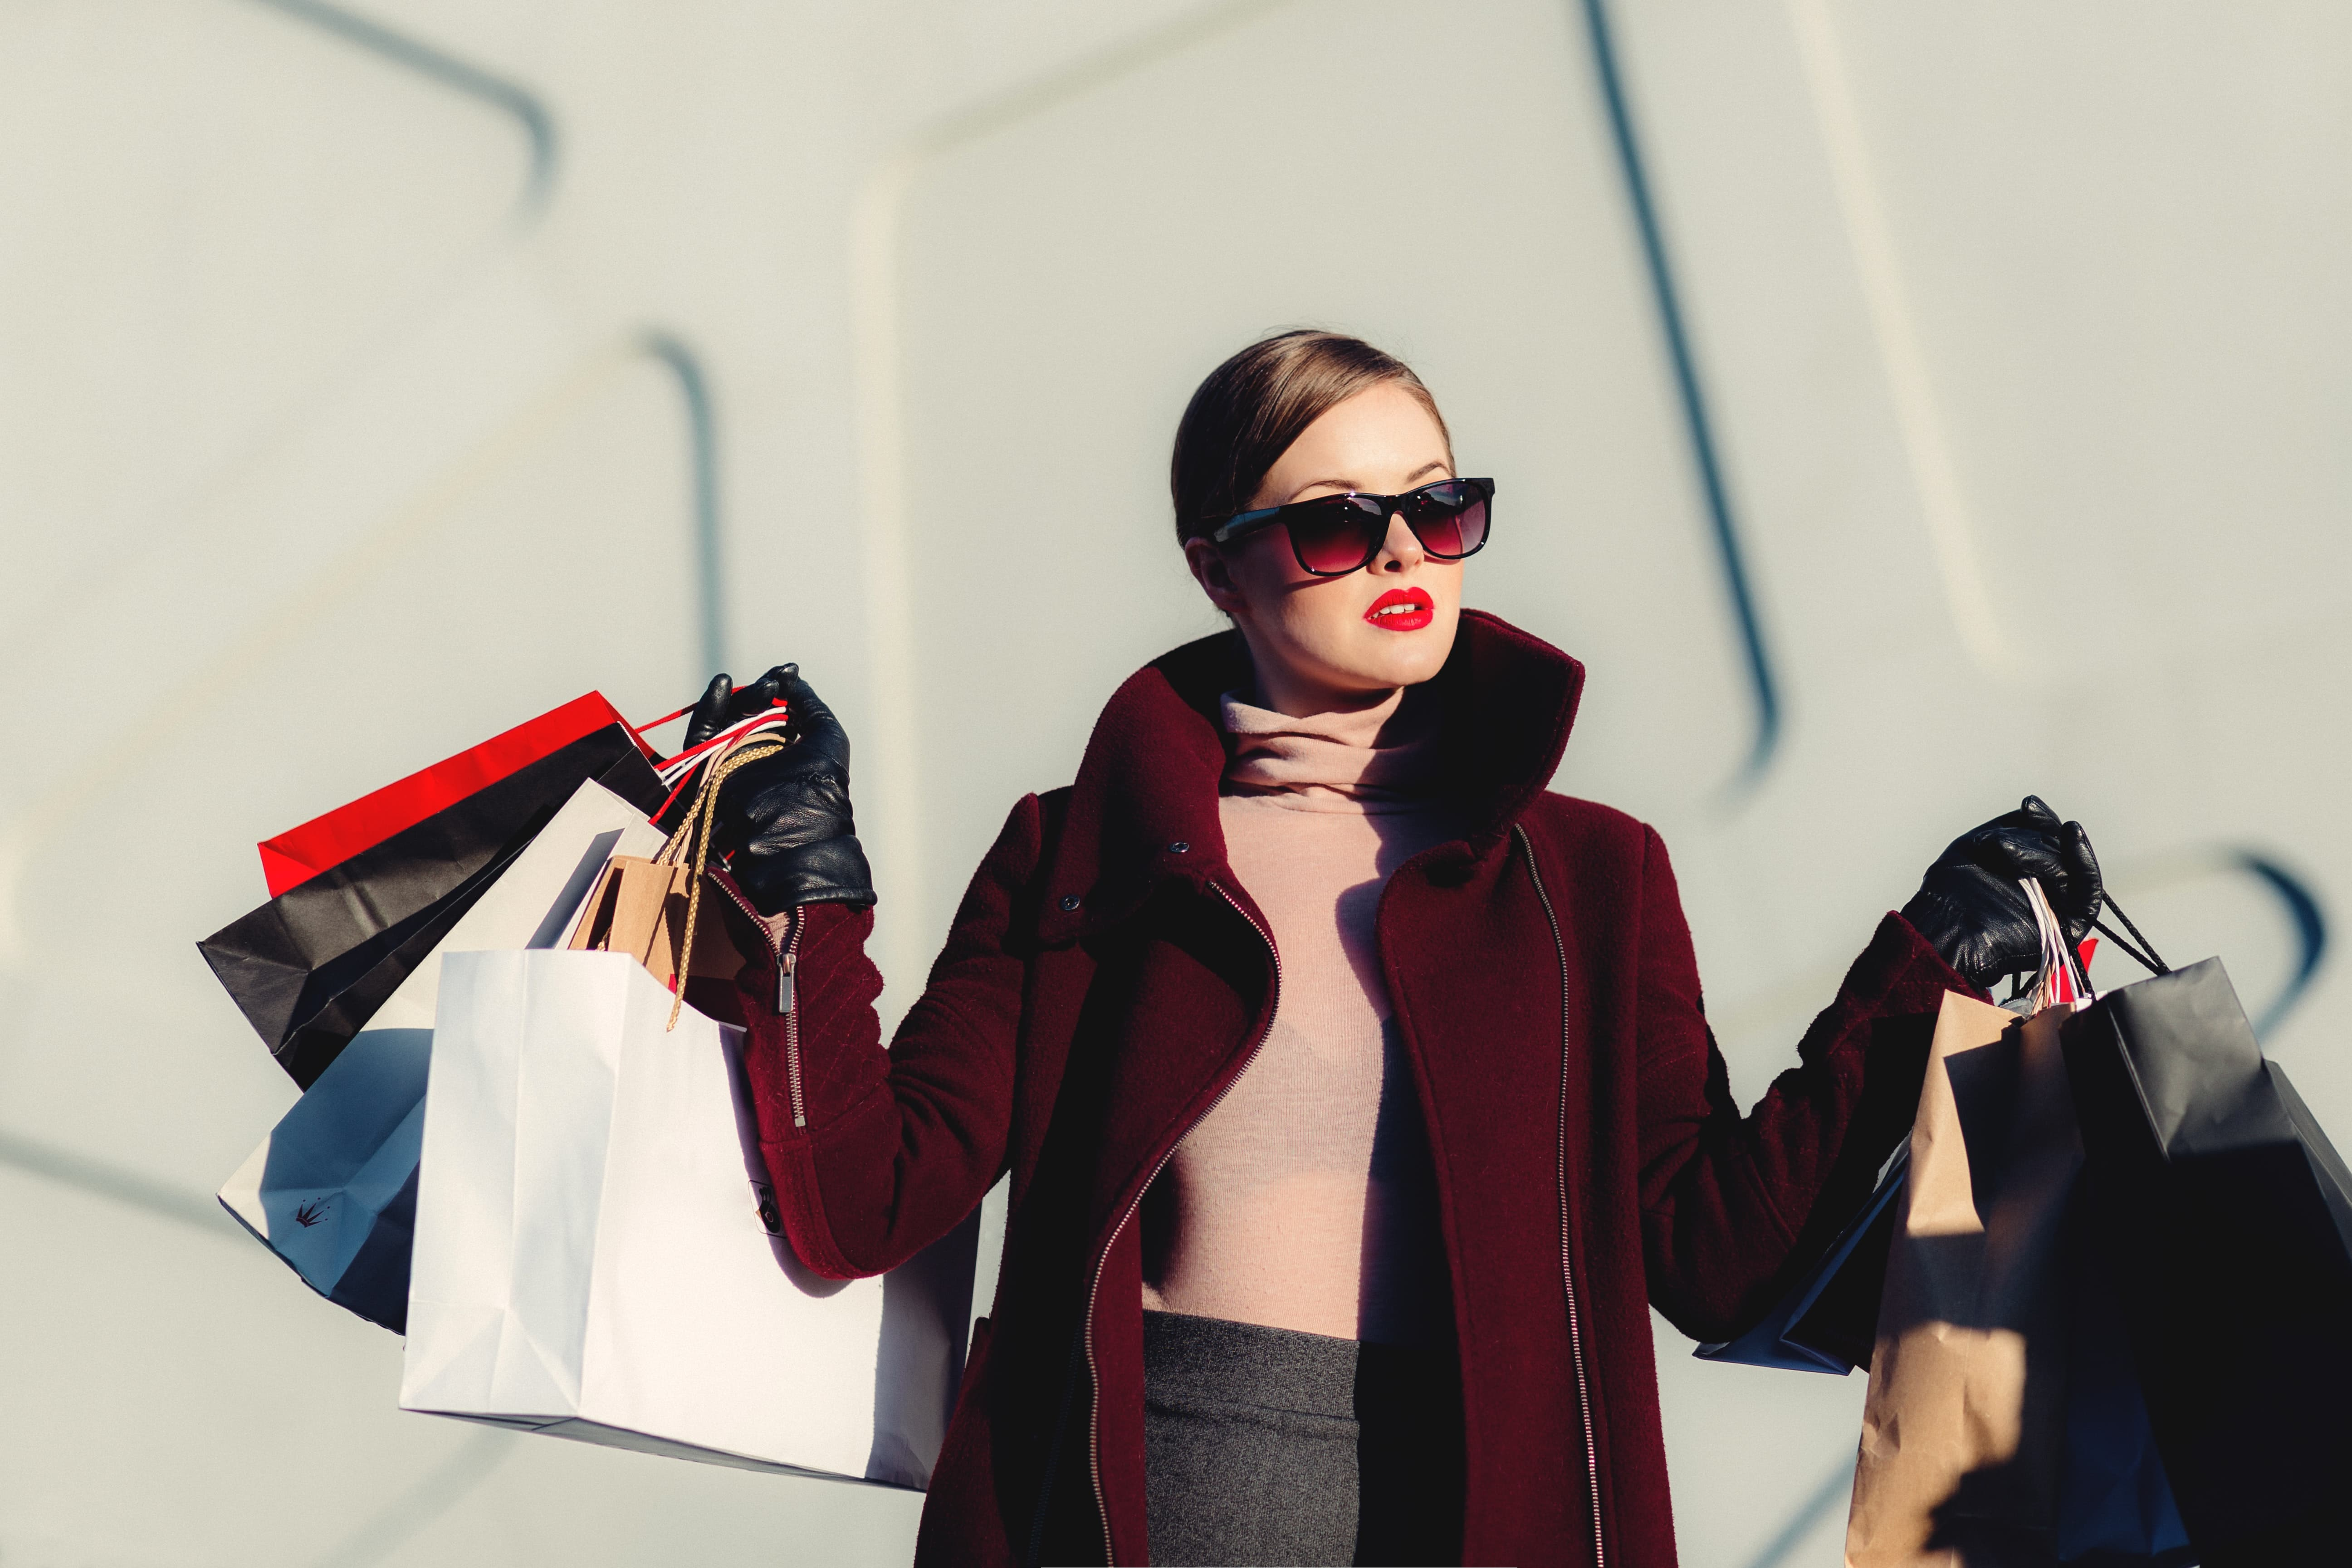 woman in sunglasses carrying shopping bags